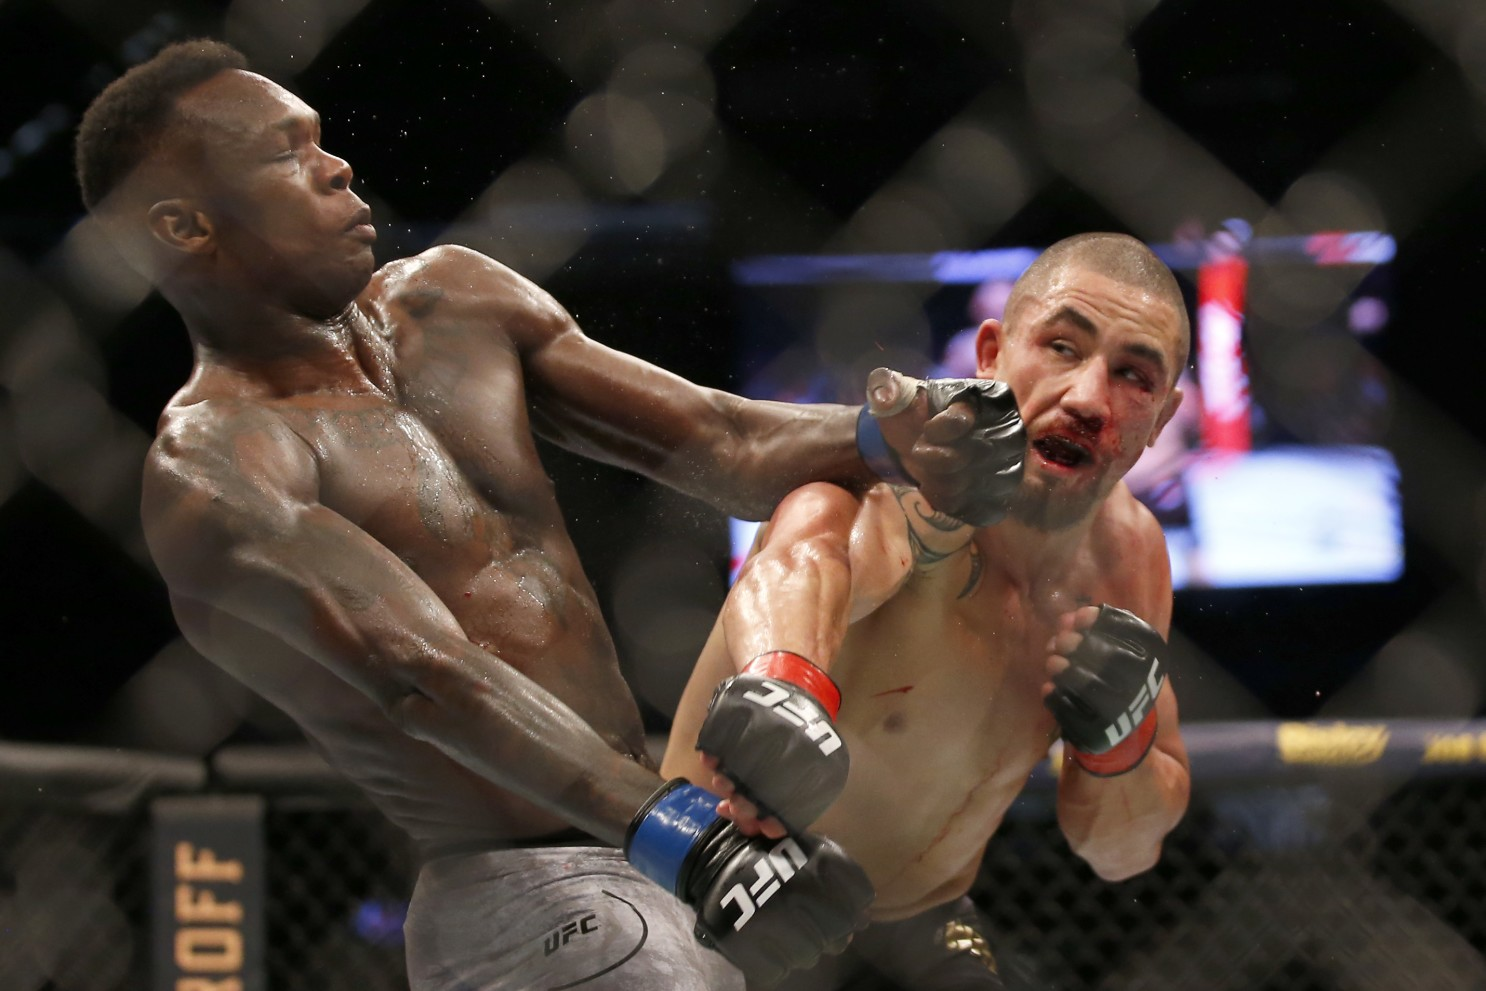 Robert Whittaker says the rematch with Israel Adesanya would be a hard fight - Whittaker